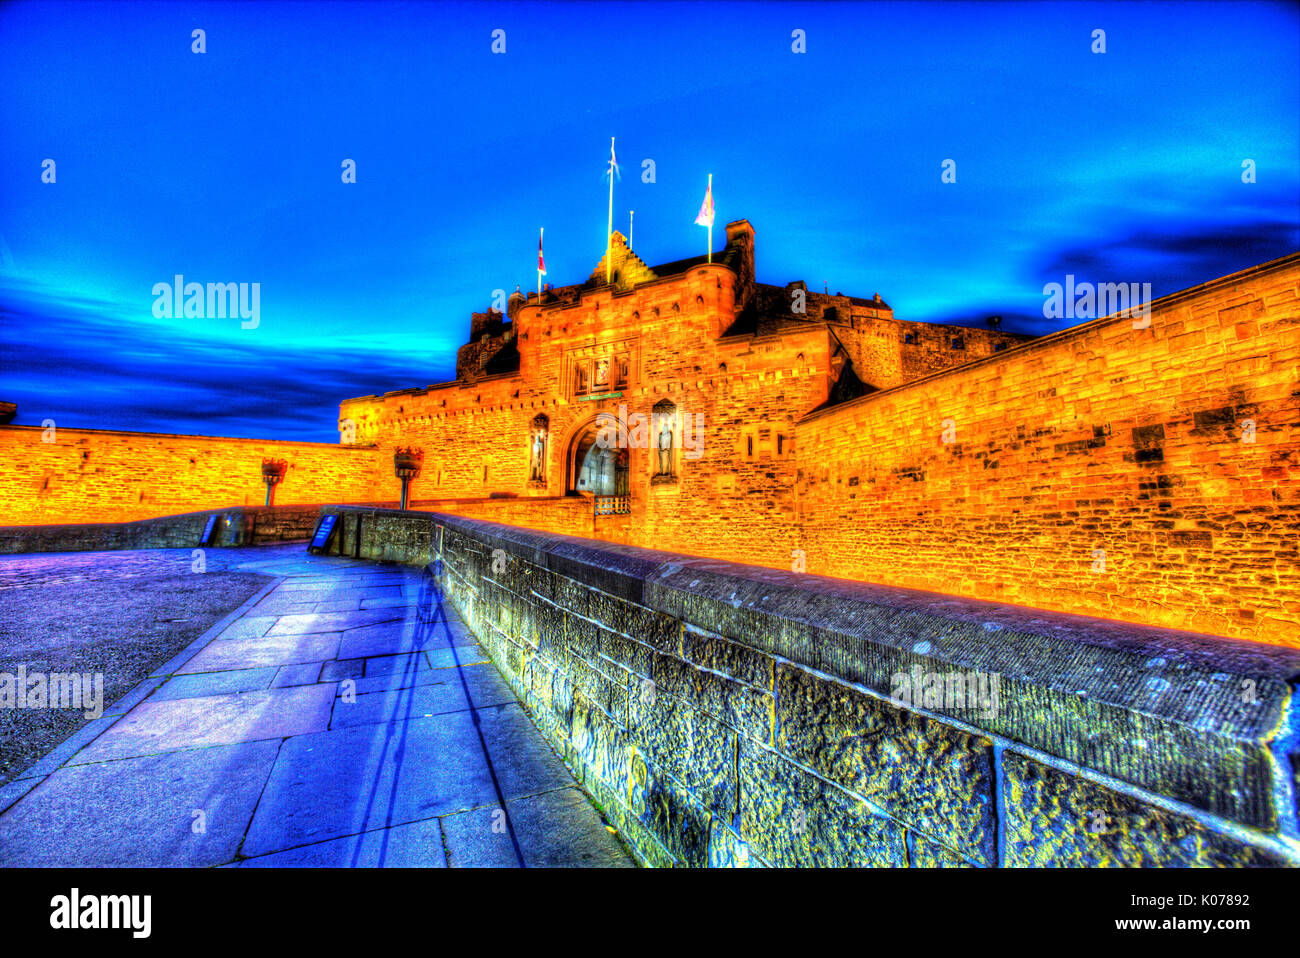 City of Edinburgh, Scotland. Picturesque night view of the main entrance and esplanade of Edinburgh Castle. - Stock Image